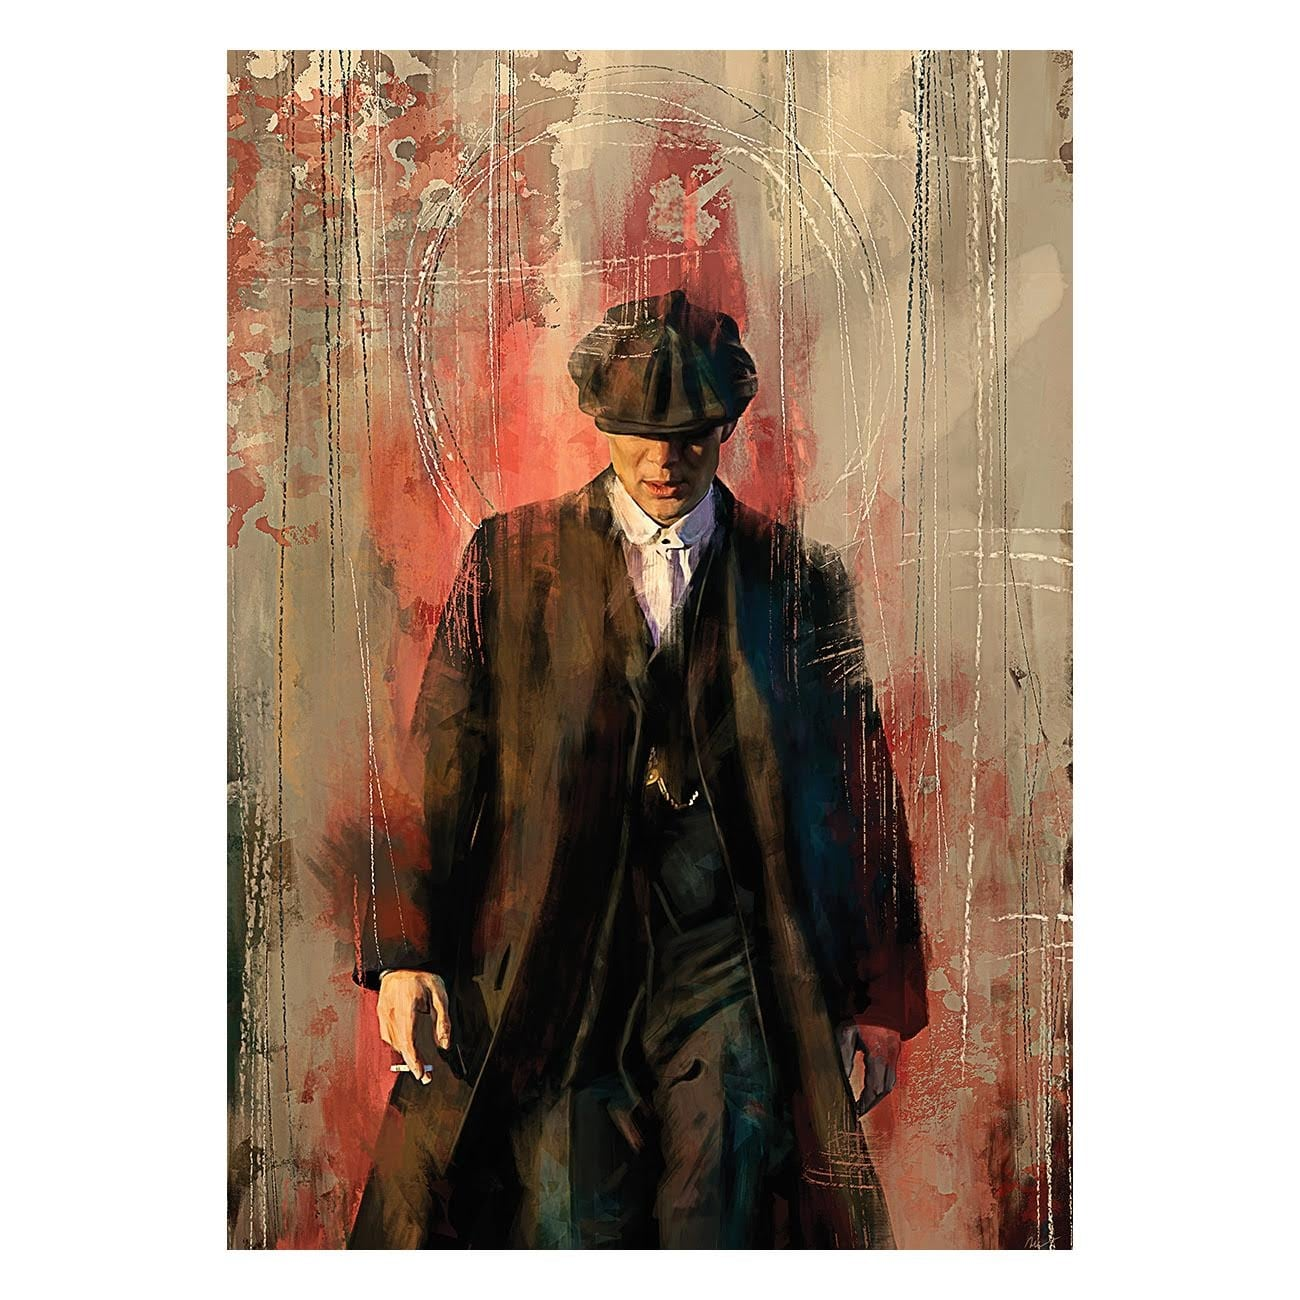 Peaky blinders design art canvas for wall decoration